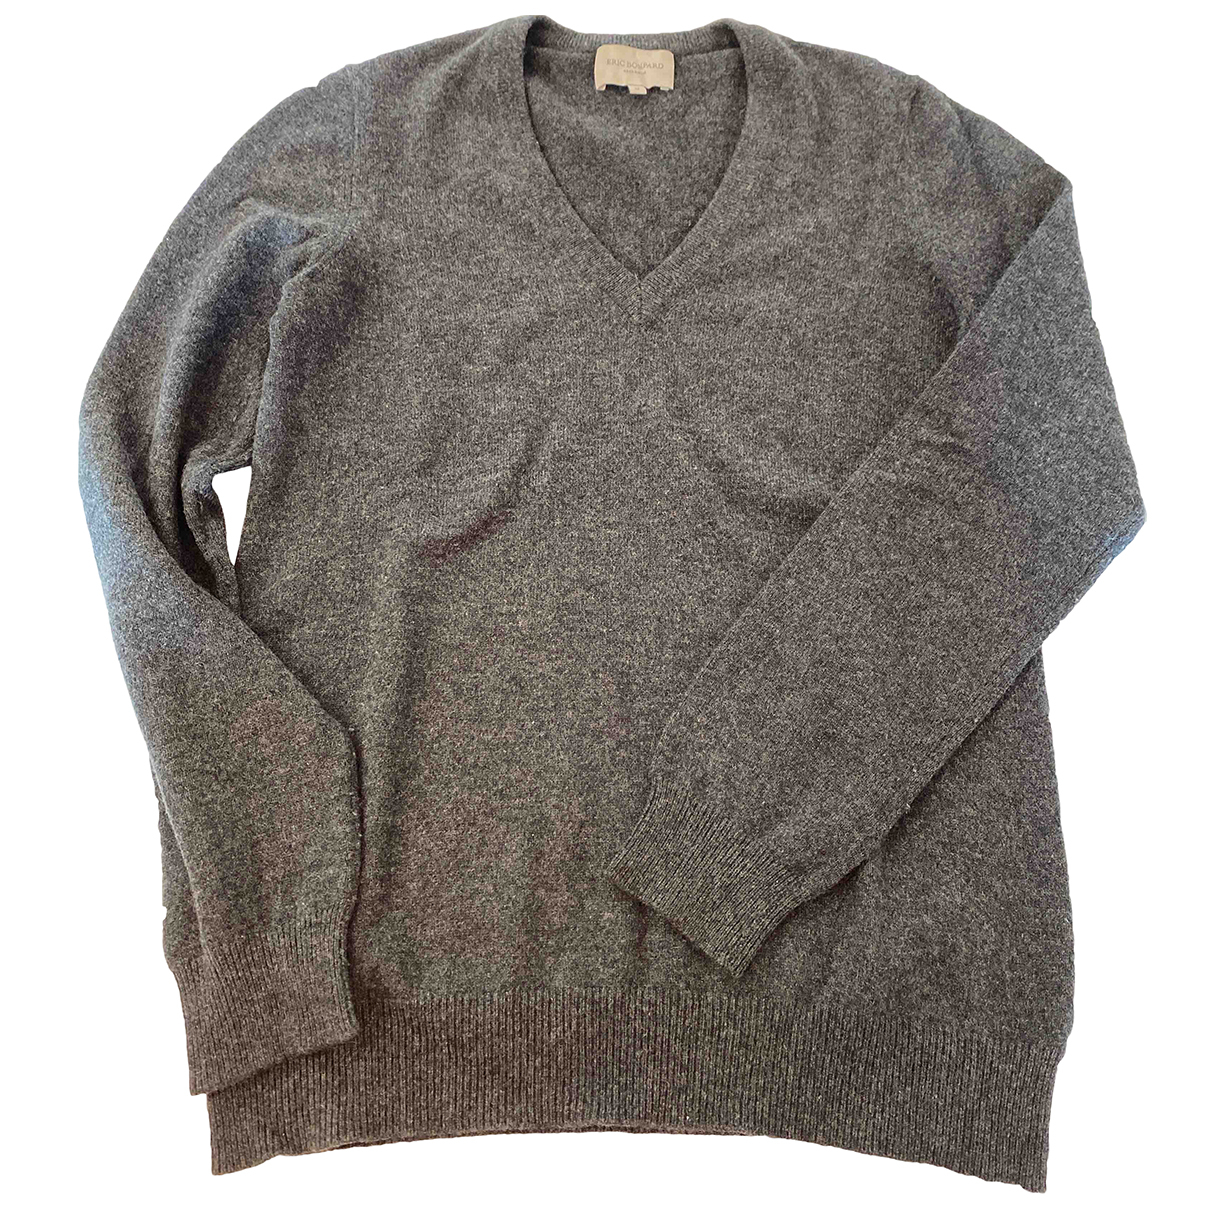 Eric Bompard N Anthracite Cashmere Knitwear for Women M International